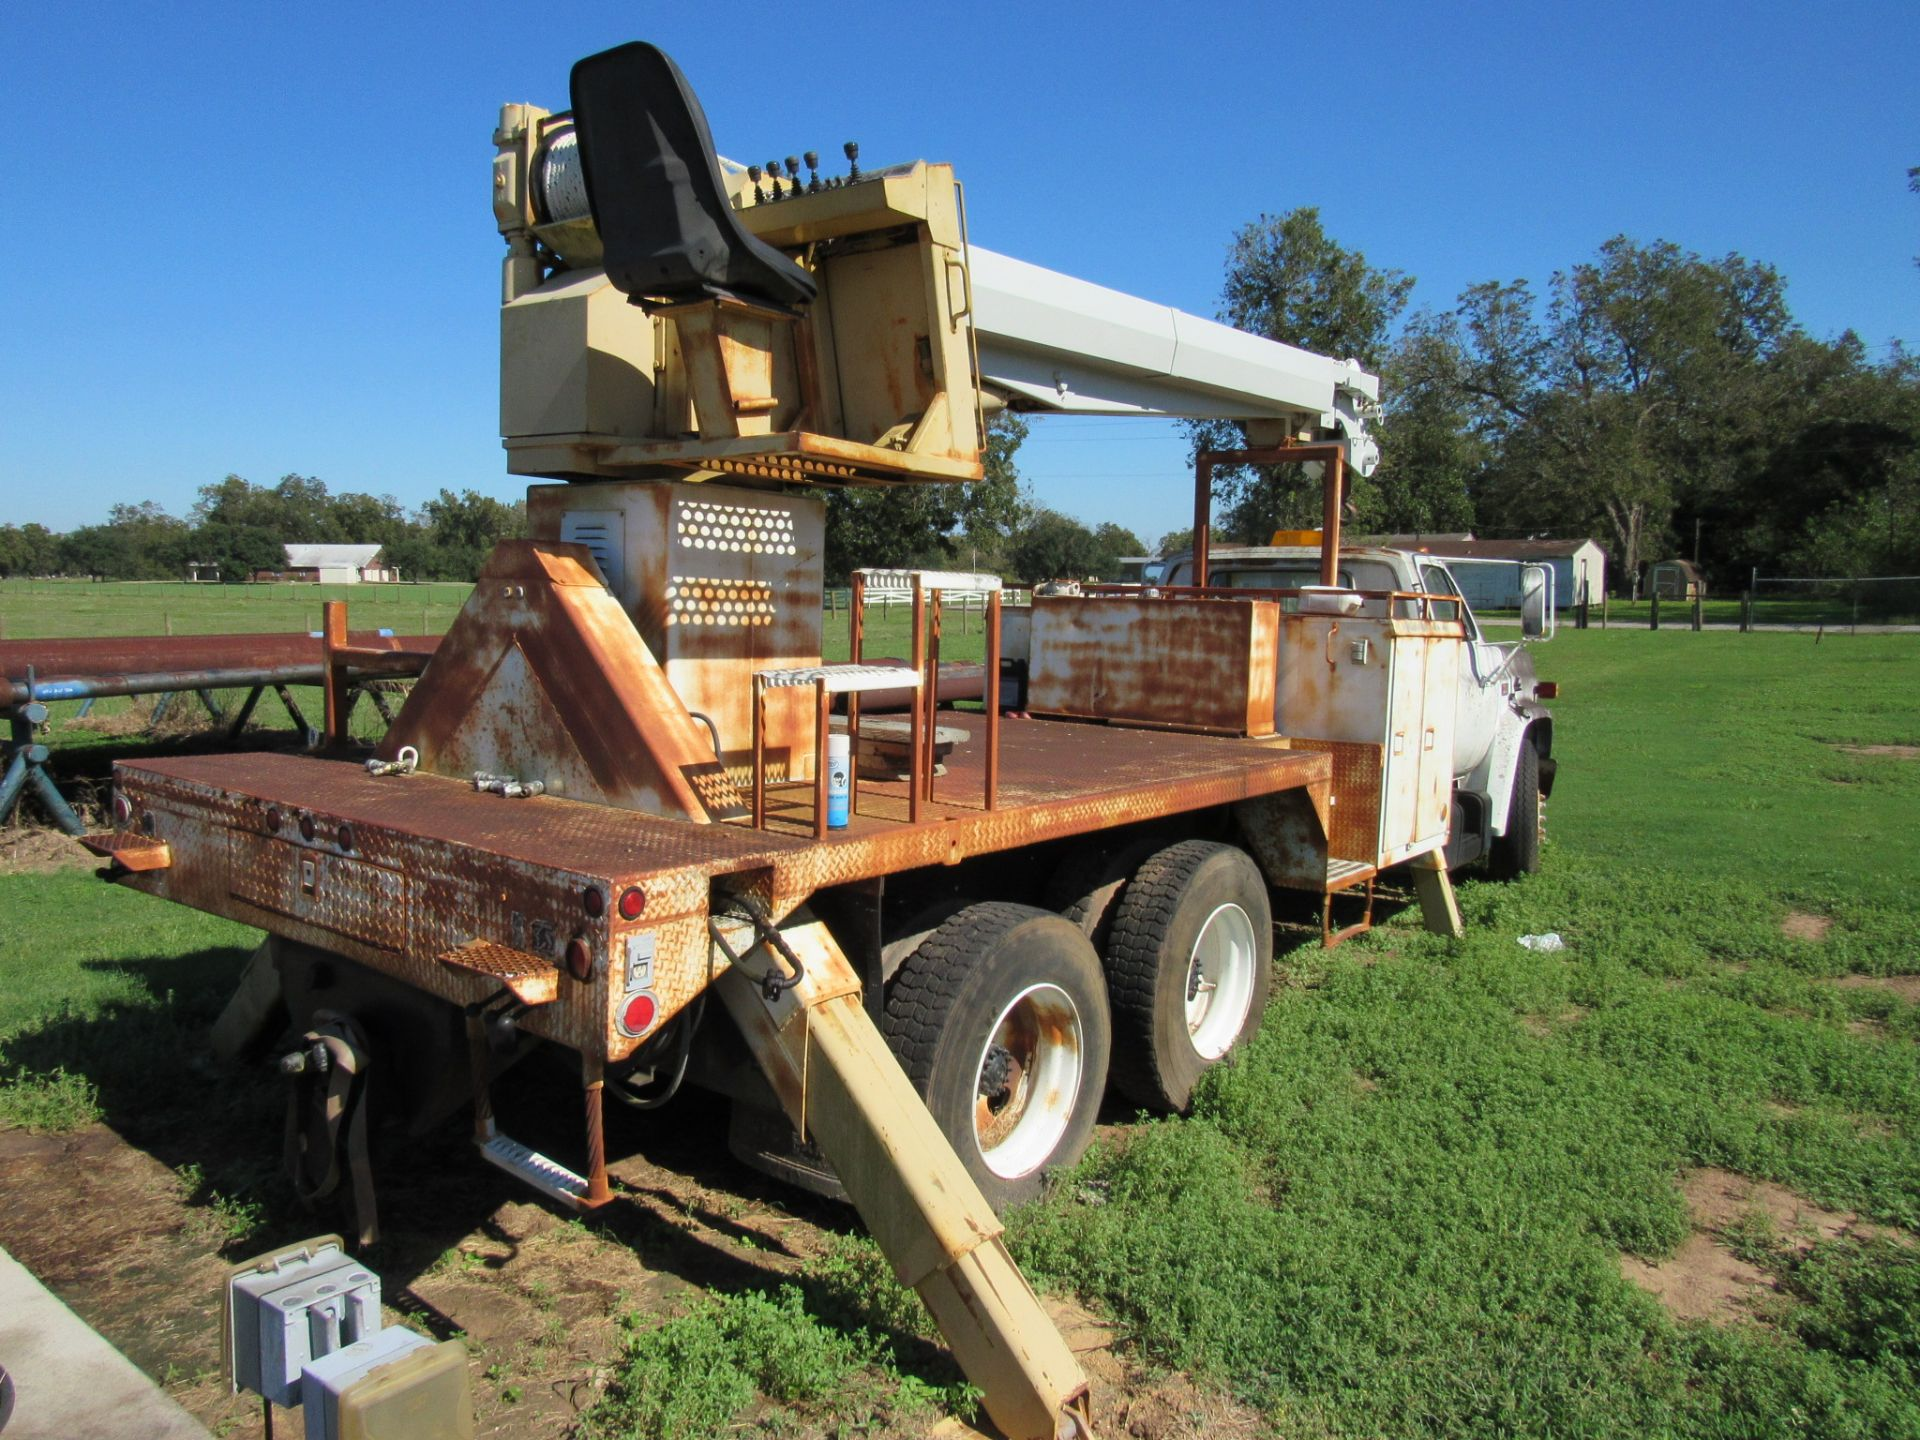 Lot 51 - GMC 7000 10 Ton Hydraulic Boom Truck